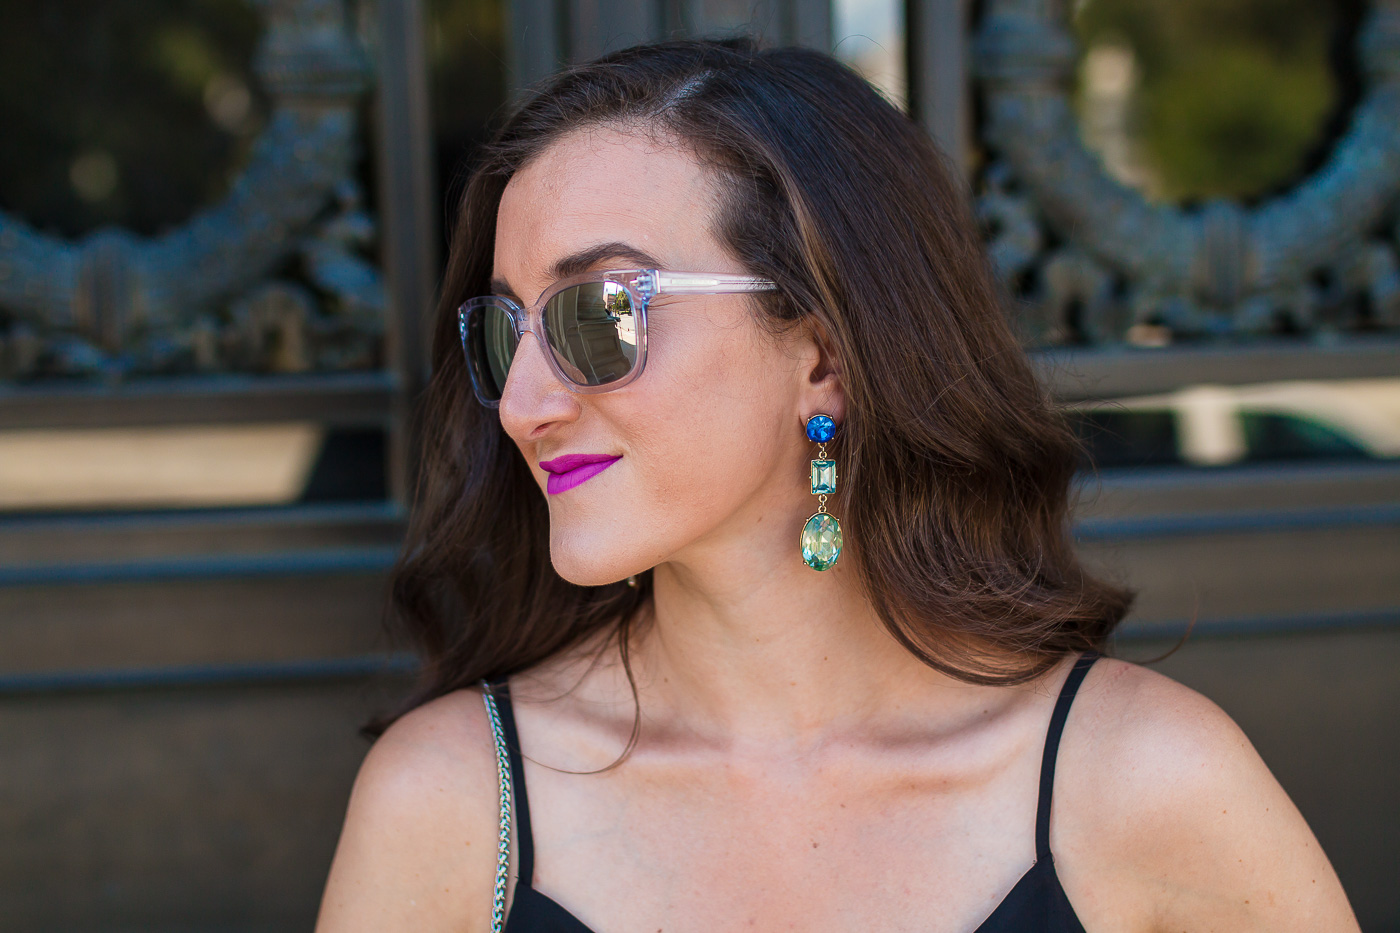 Green and Blue Statement Earrings on Fashion Blogger Baubles to Bubbles